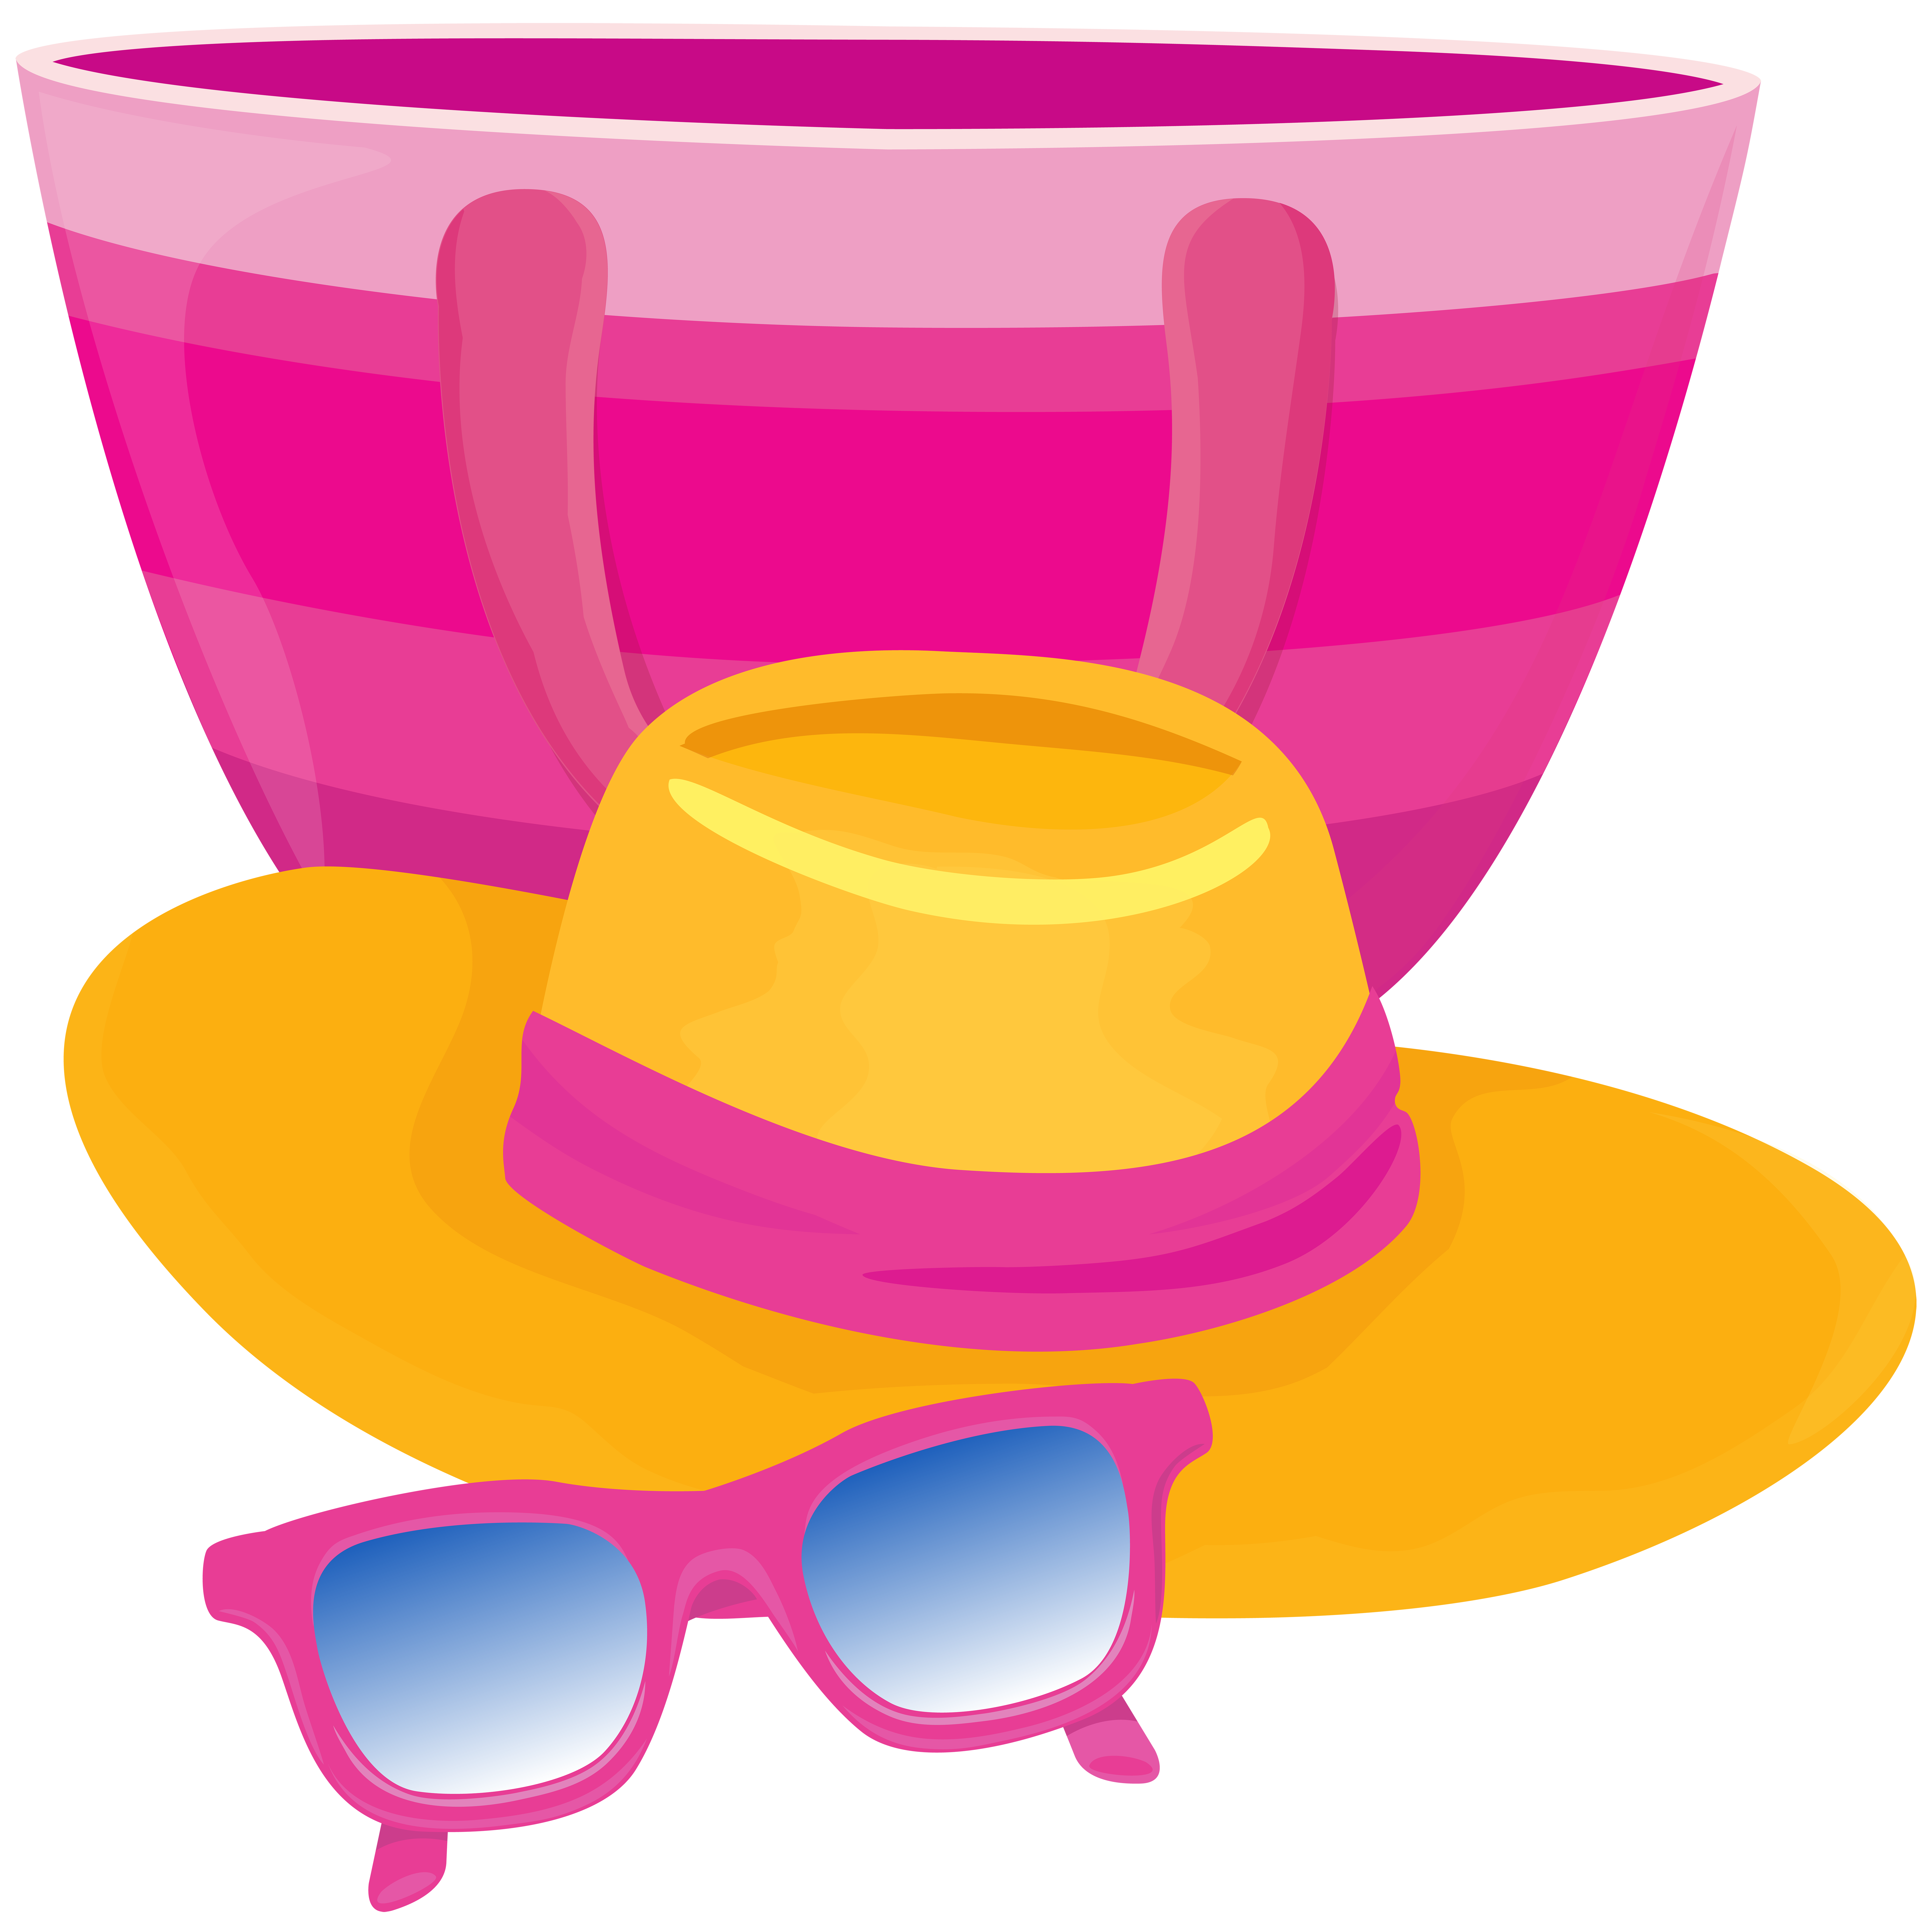 Hat and sunglasses clipart freeuse library Beach Bag Hat and Glasses Transparent PNG Image | Gallery ... freeuse library